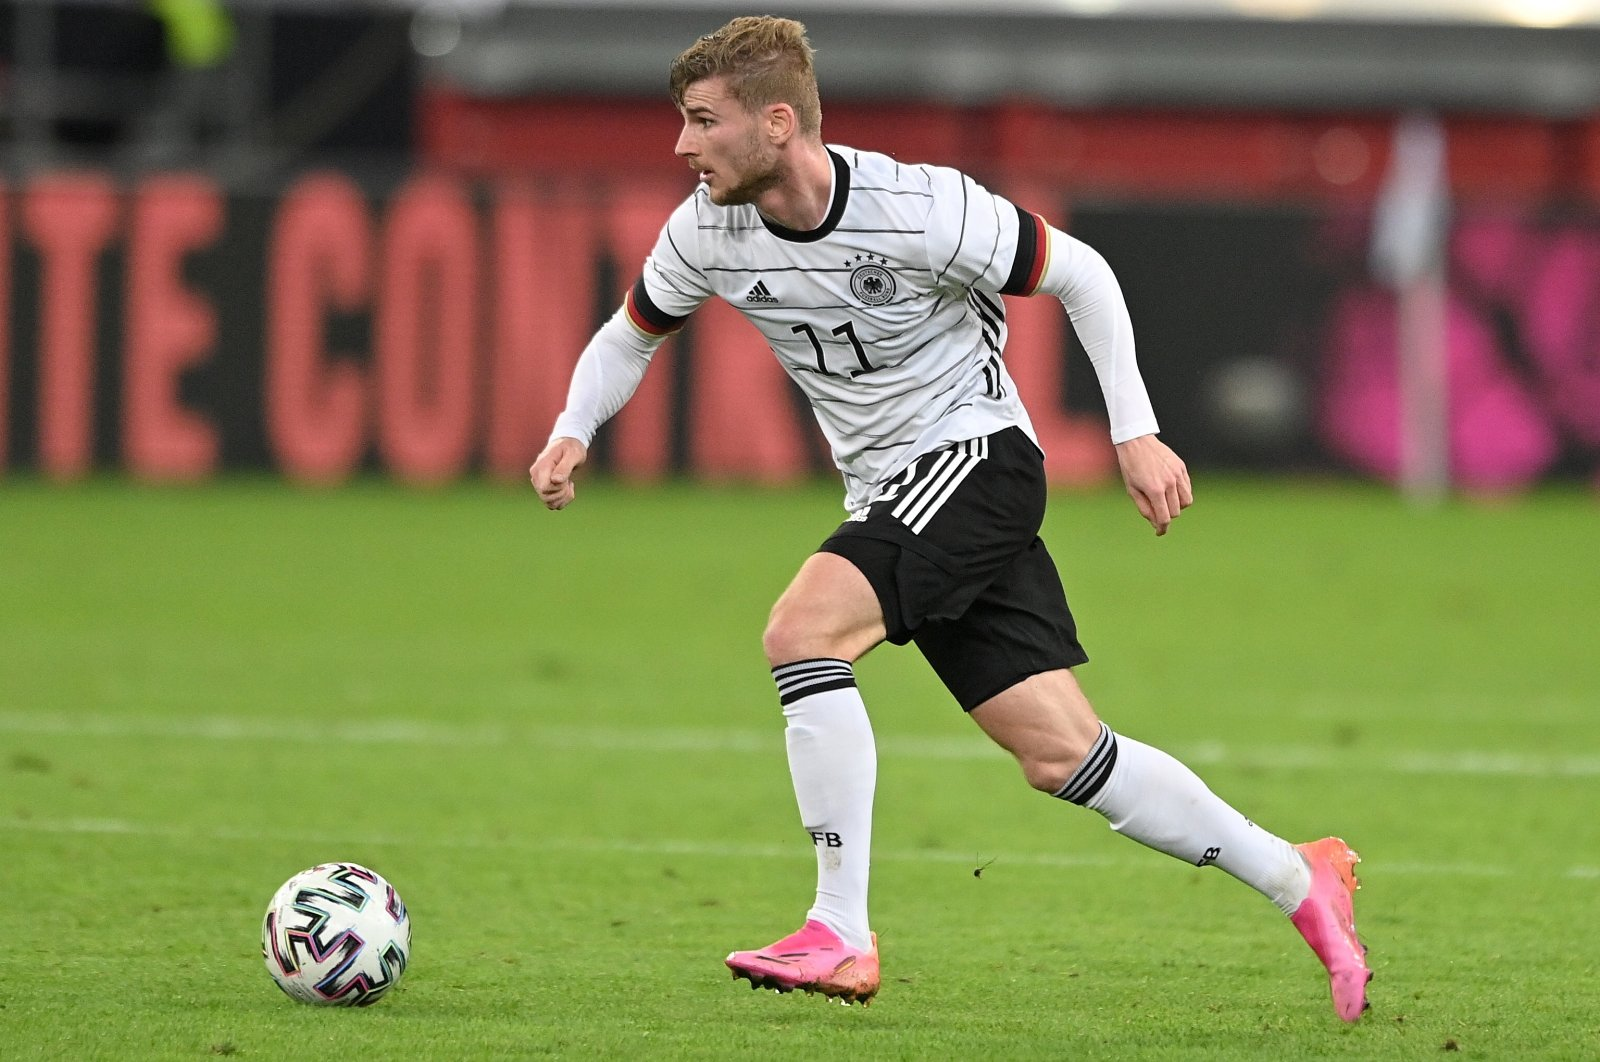 Germany's Timo Werner in action during the International friendly against Latvia in Duesseldorf, Germany, June 7, 2021. (EPA Photo)